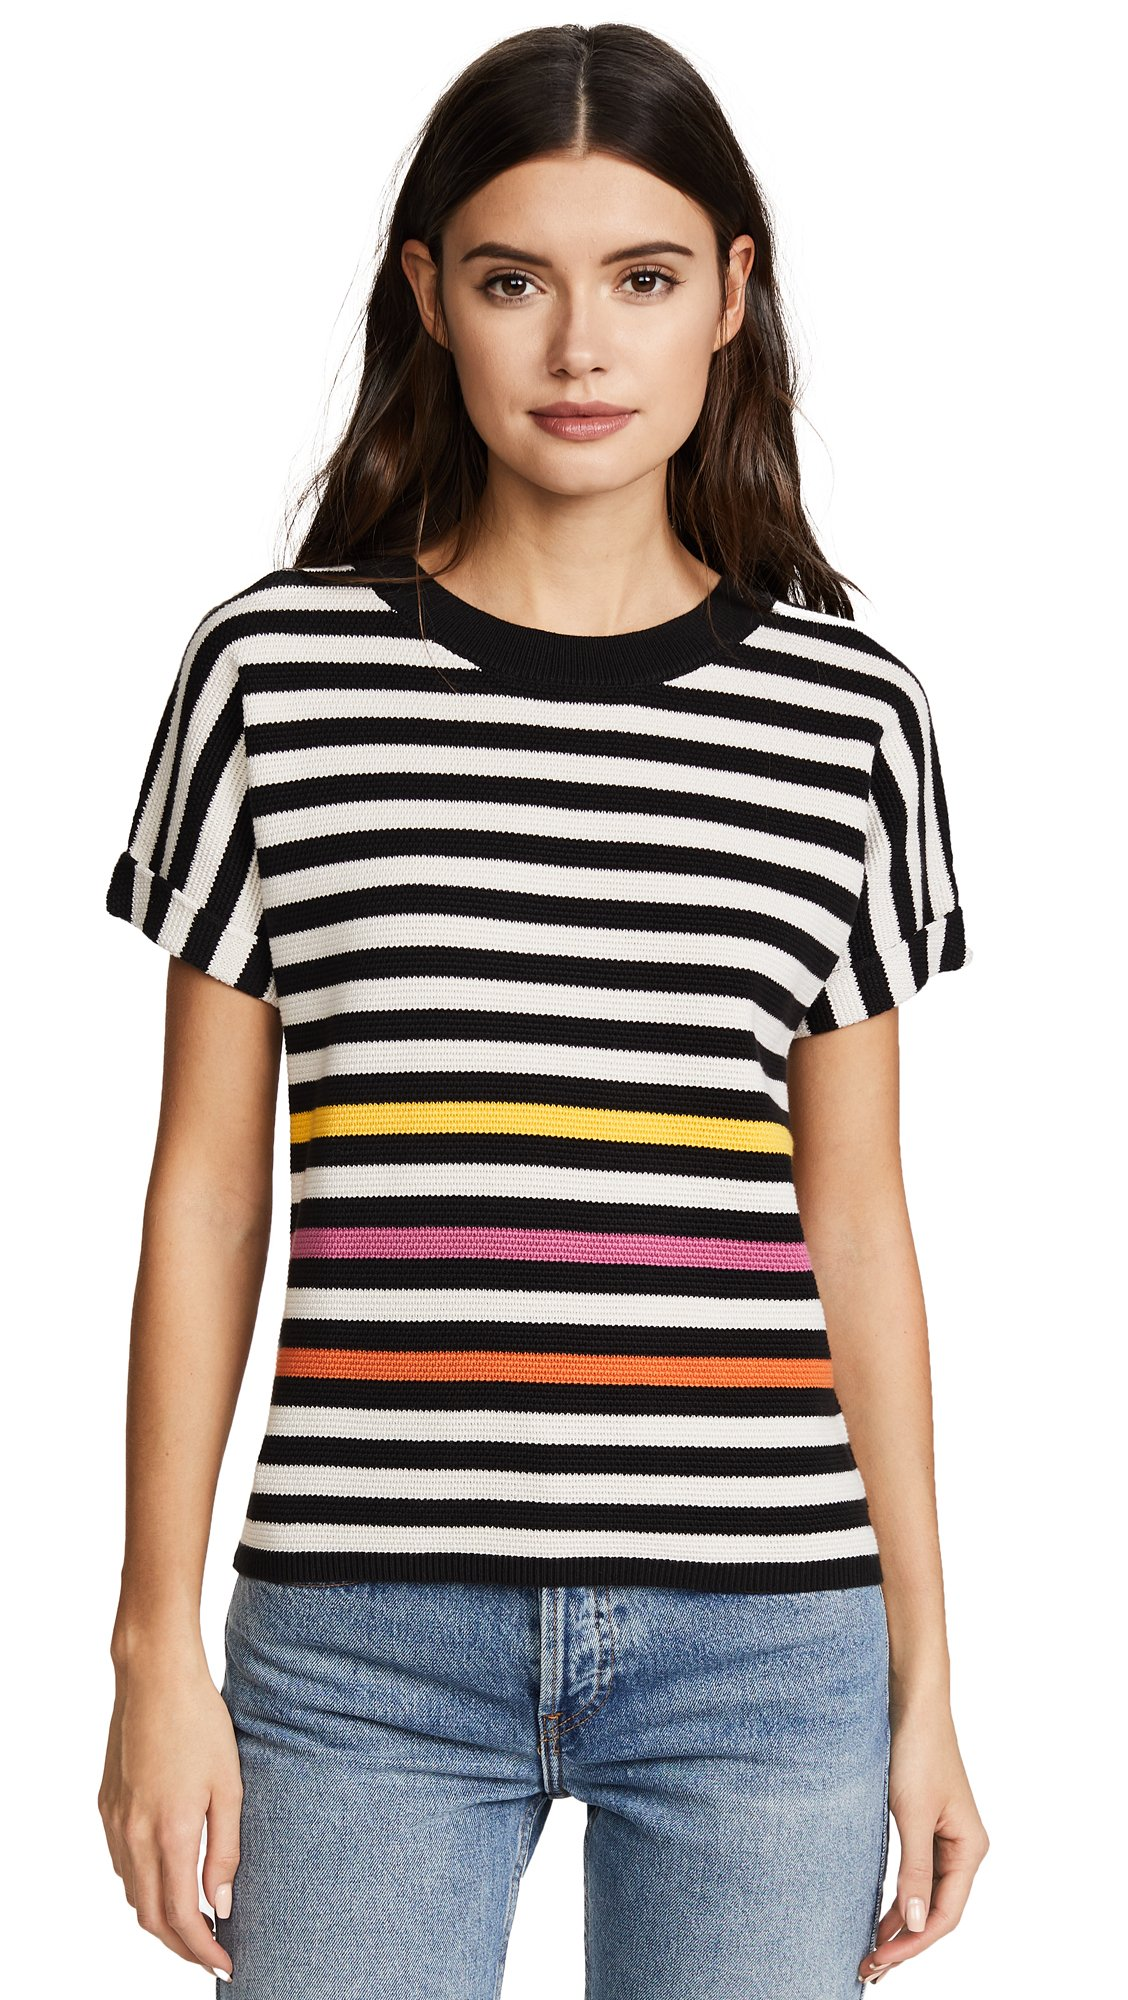 Paul Smith Women's Striped Tee, Multi, Medium